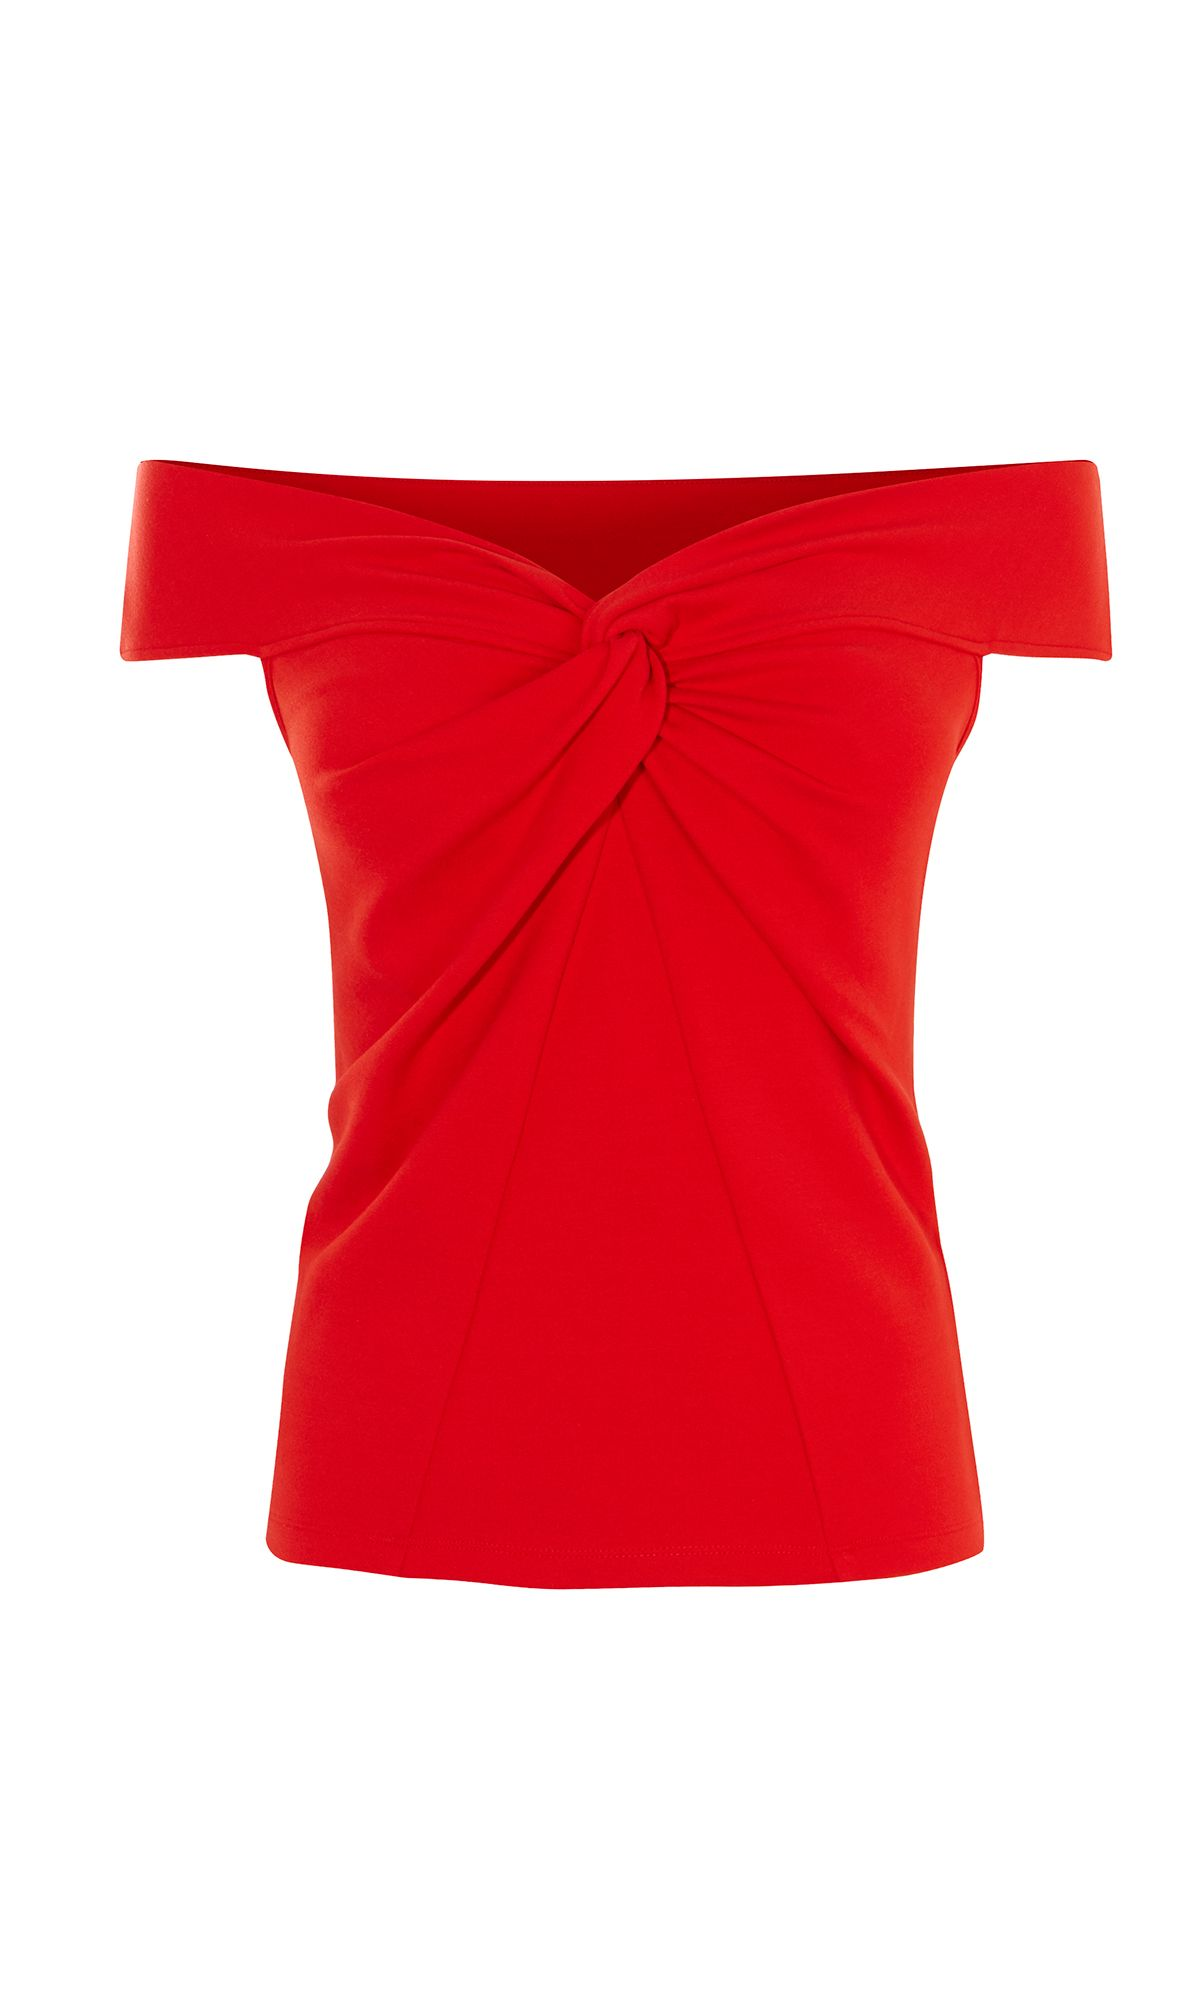 Karen Millen Off The Shoulder Knotted Top, Red